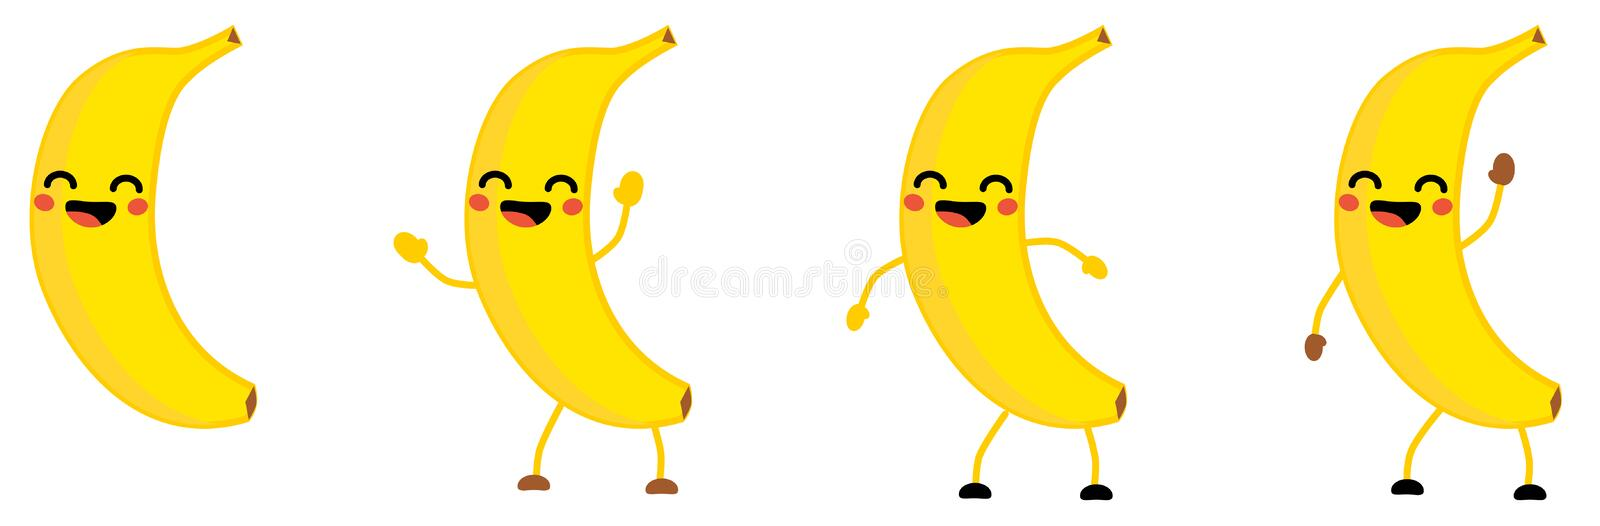 Cute kawaii style Banana fruit icon, eyes closed, smiling with open mouth. Version with hands raised, down and waving. stock illustration